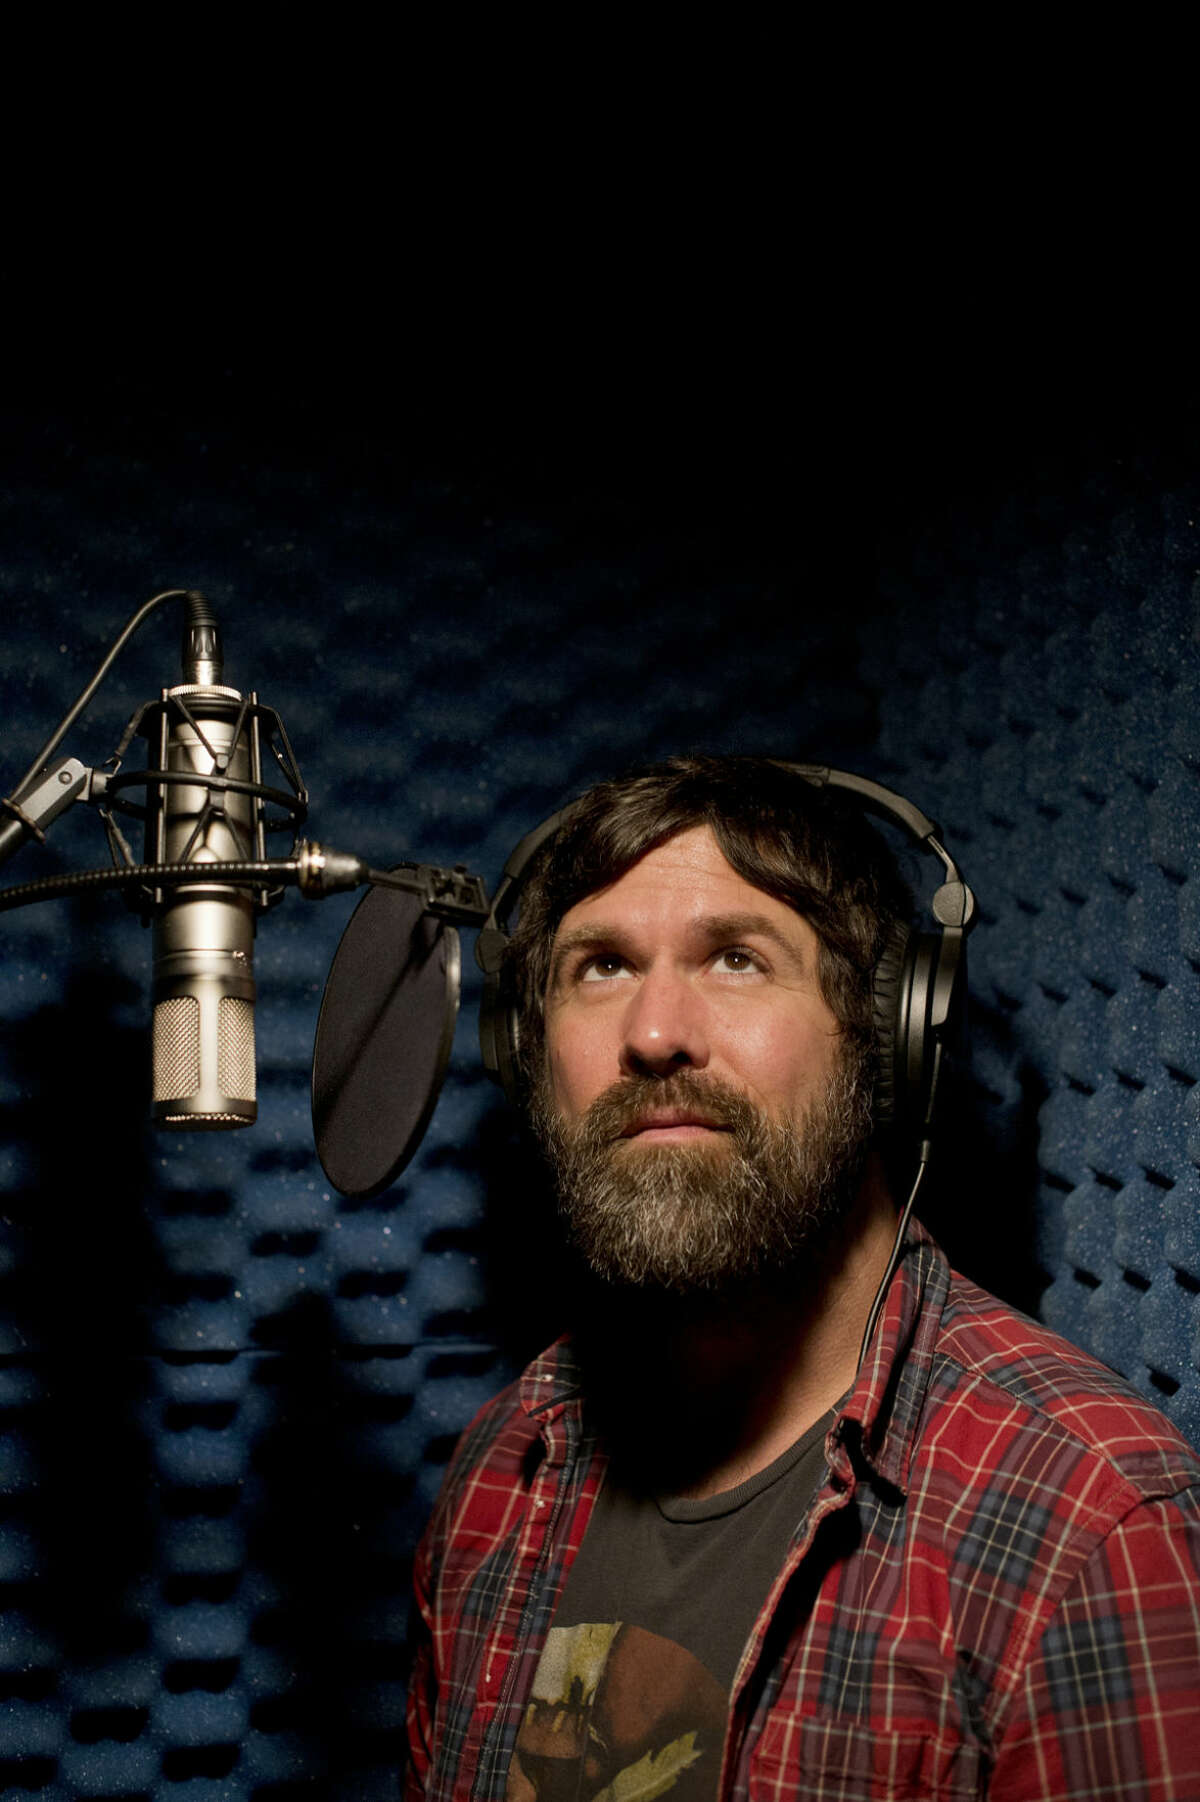 """Singer and songwriter Brandon Calhoon was on INXS Rock Star and was recently tapped to write the theme song for """"Battle Creek,"""" a CBS cop drama from the creator of """"Breaking Bad."""""""